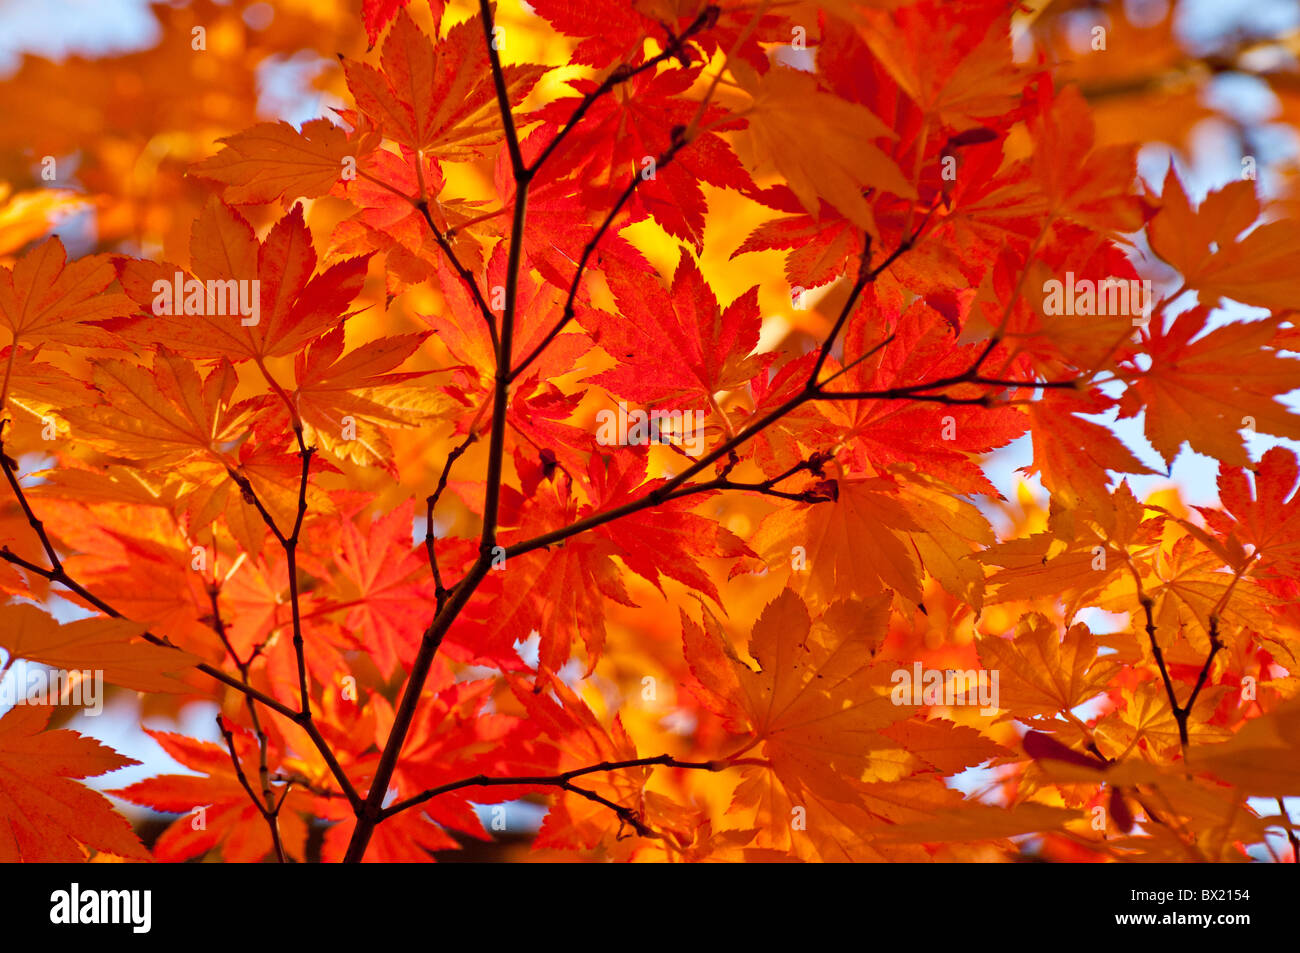 USA, Idaho, City of Boise, Scenic view of Fall colors, trees and leaves on the Boise River Greenbelt. - Stock Image